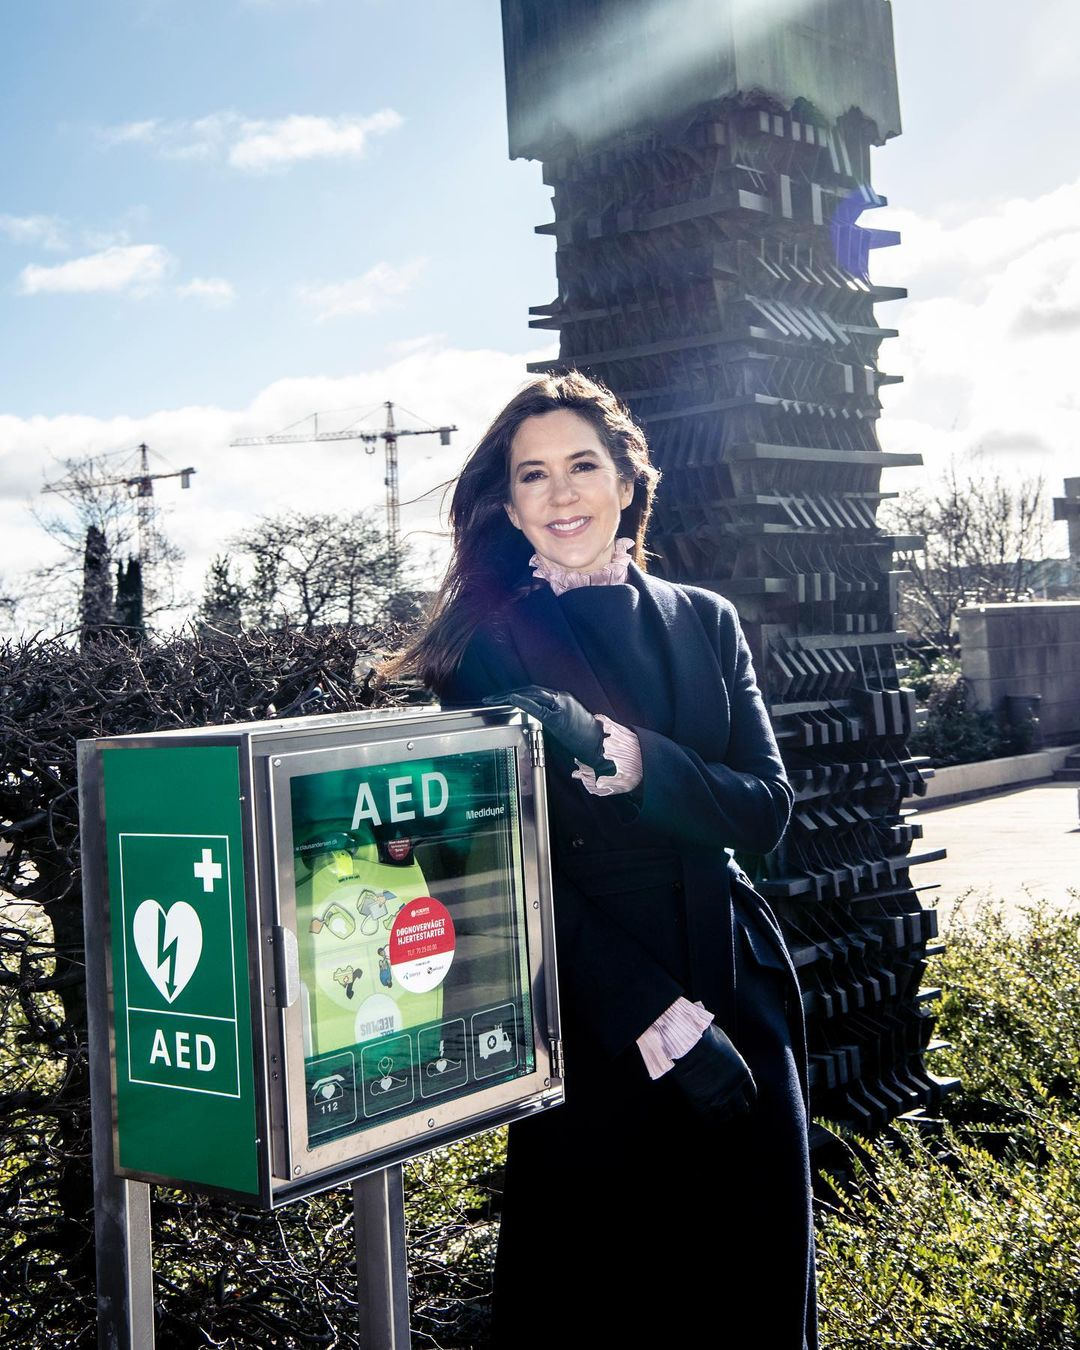 The patron of Heart Association, Crown Princess Mary received the new defibrillator at Amaliehaven.